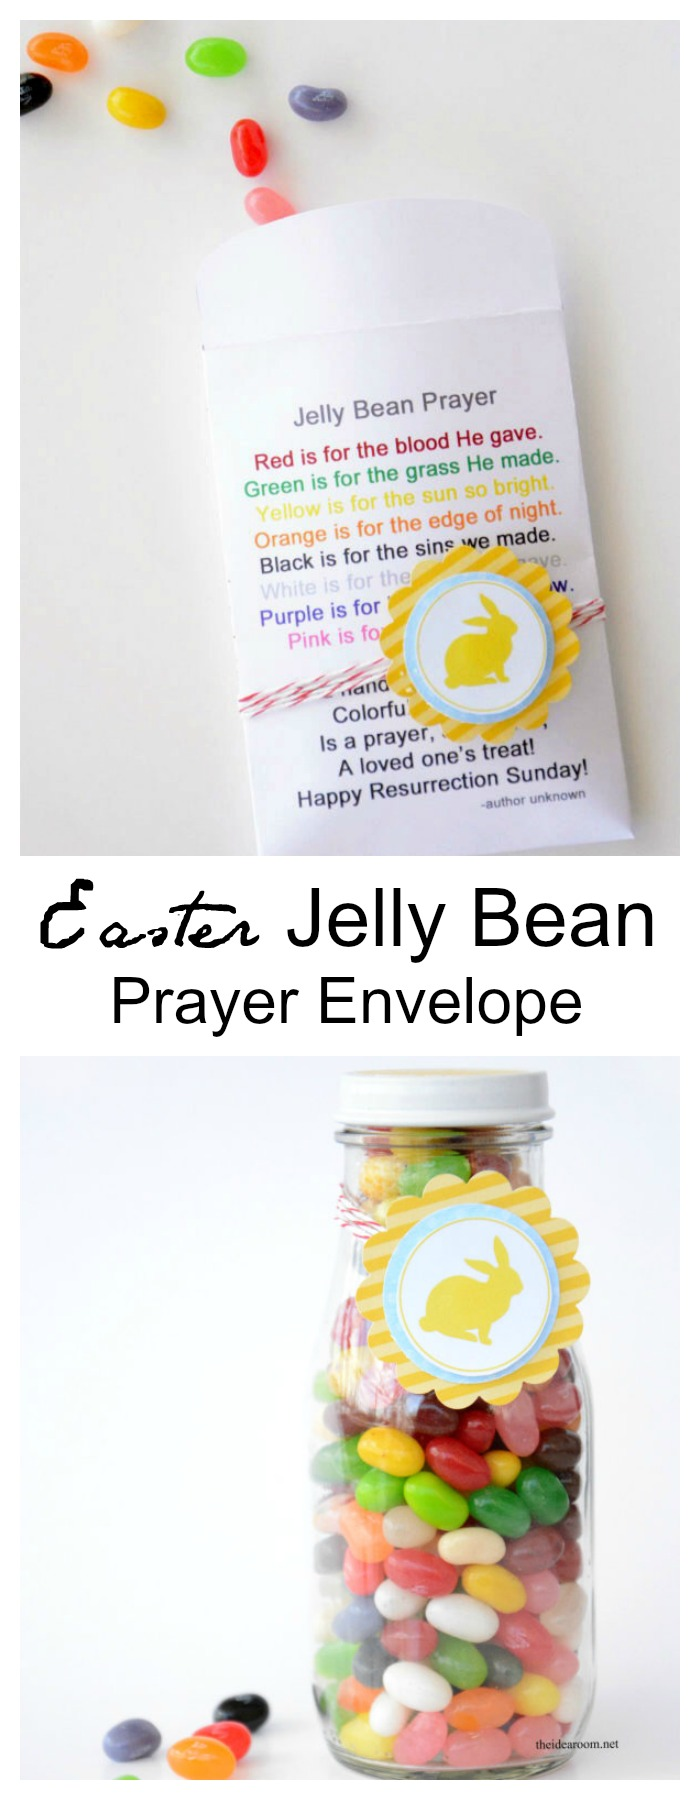 Easter-Jelly-Bean-Prayer-Envelope